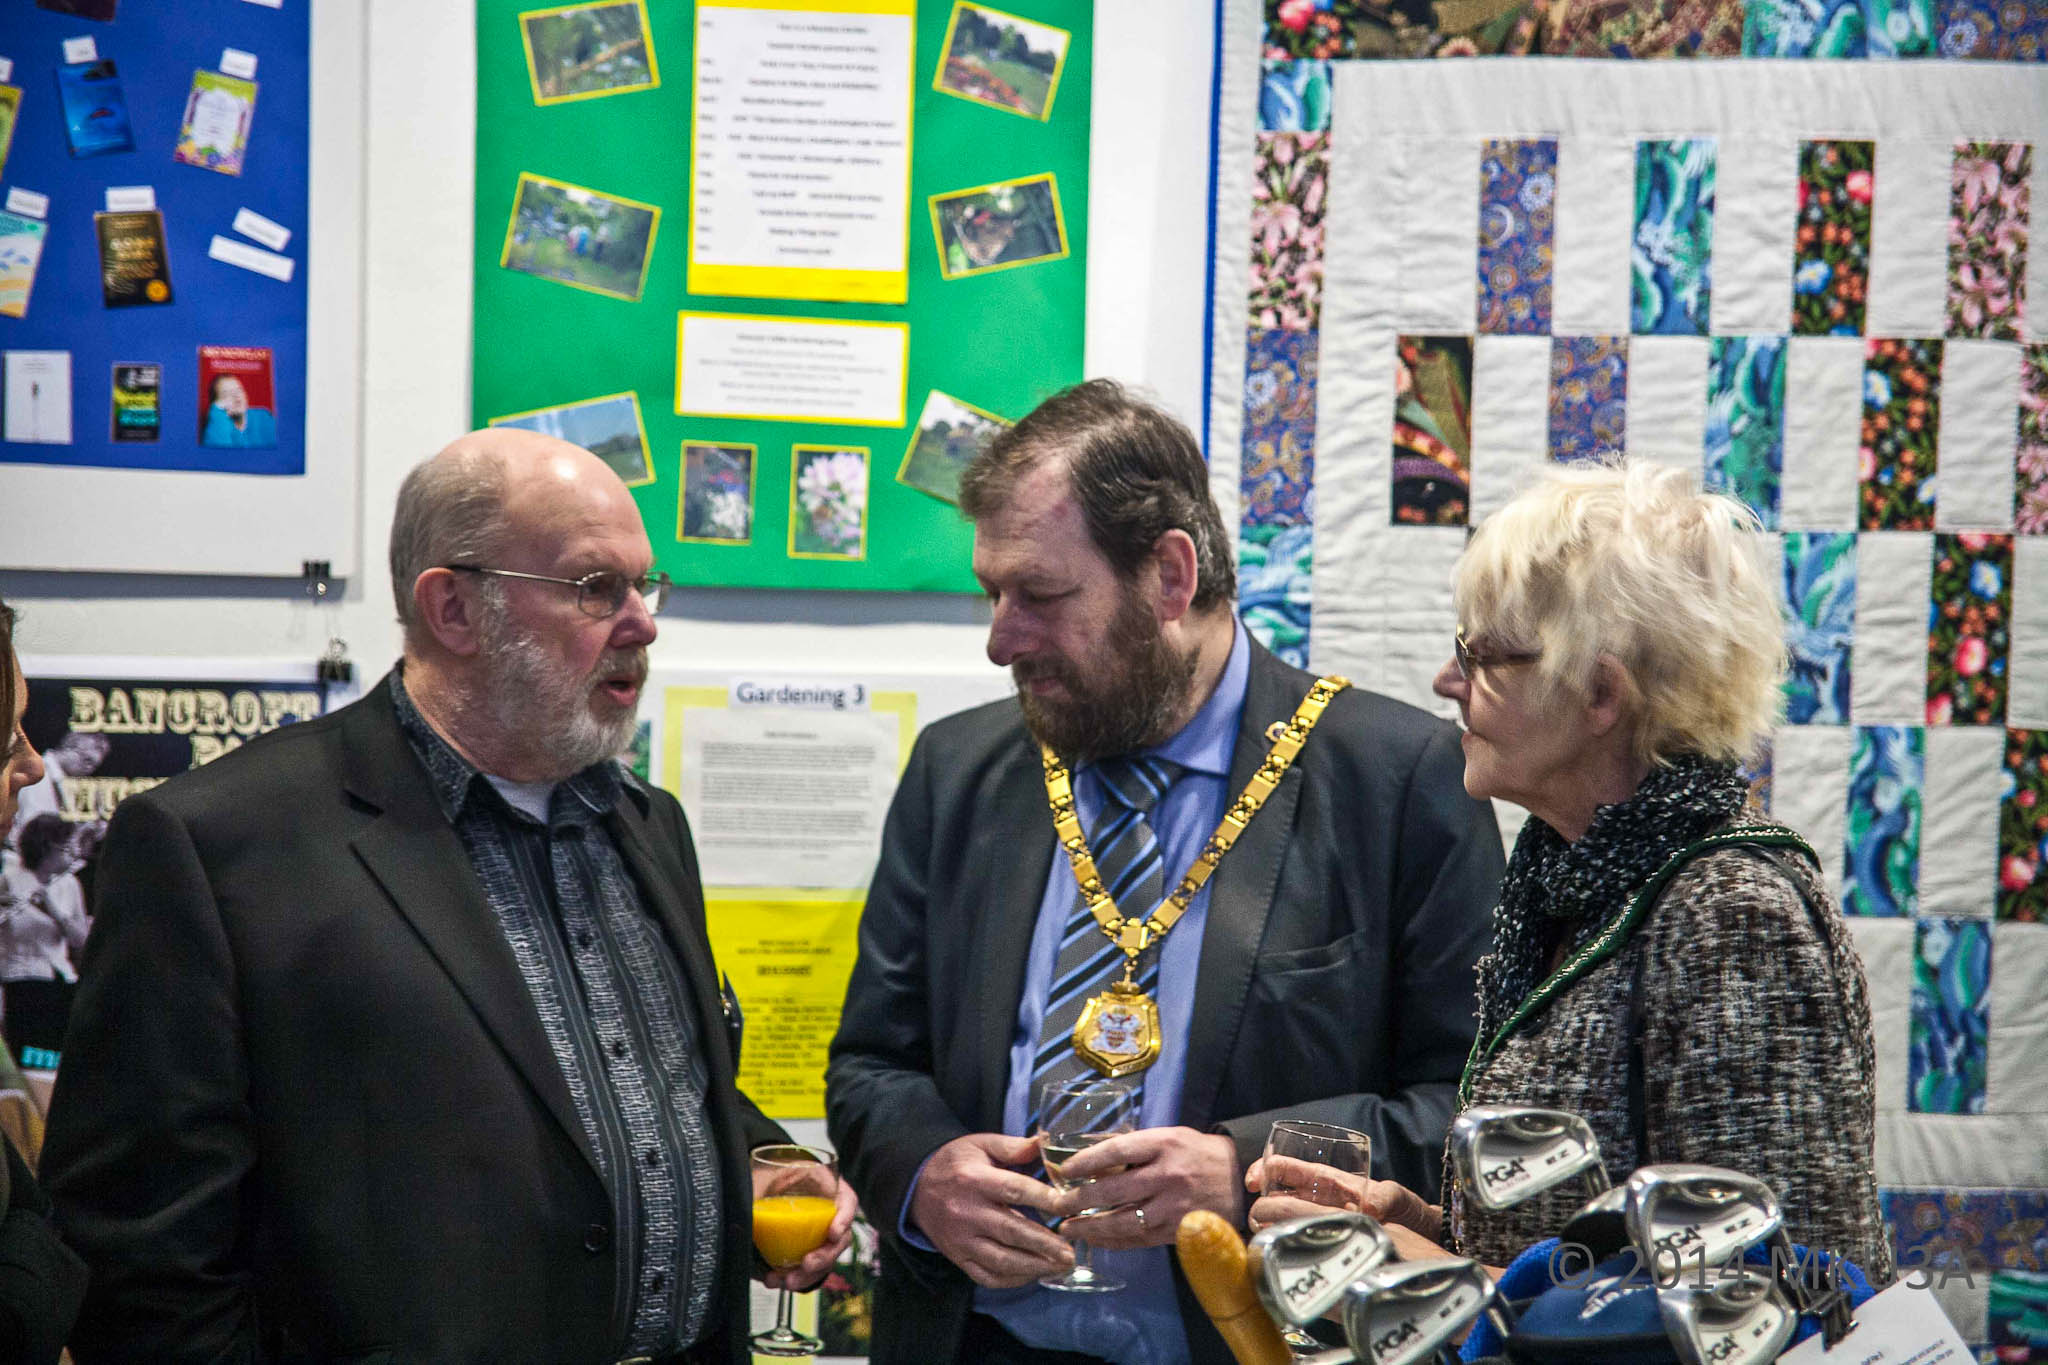 The Mayor of Milton Keynes, Councillor Brian White and Mayoress, Mrs Leena Lindholm-White talk with MKU3A Webmaster Derek Barrett about the exhibition